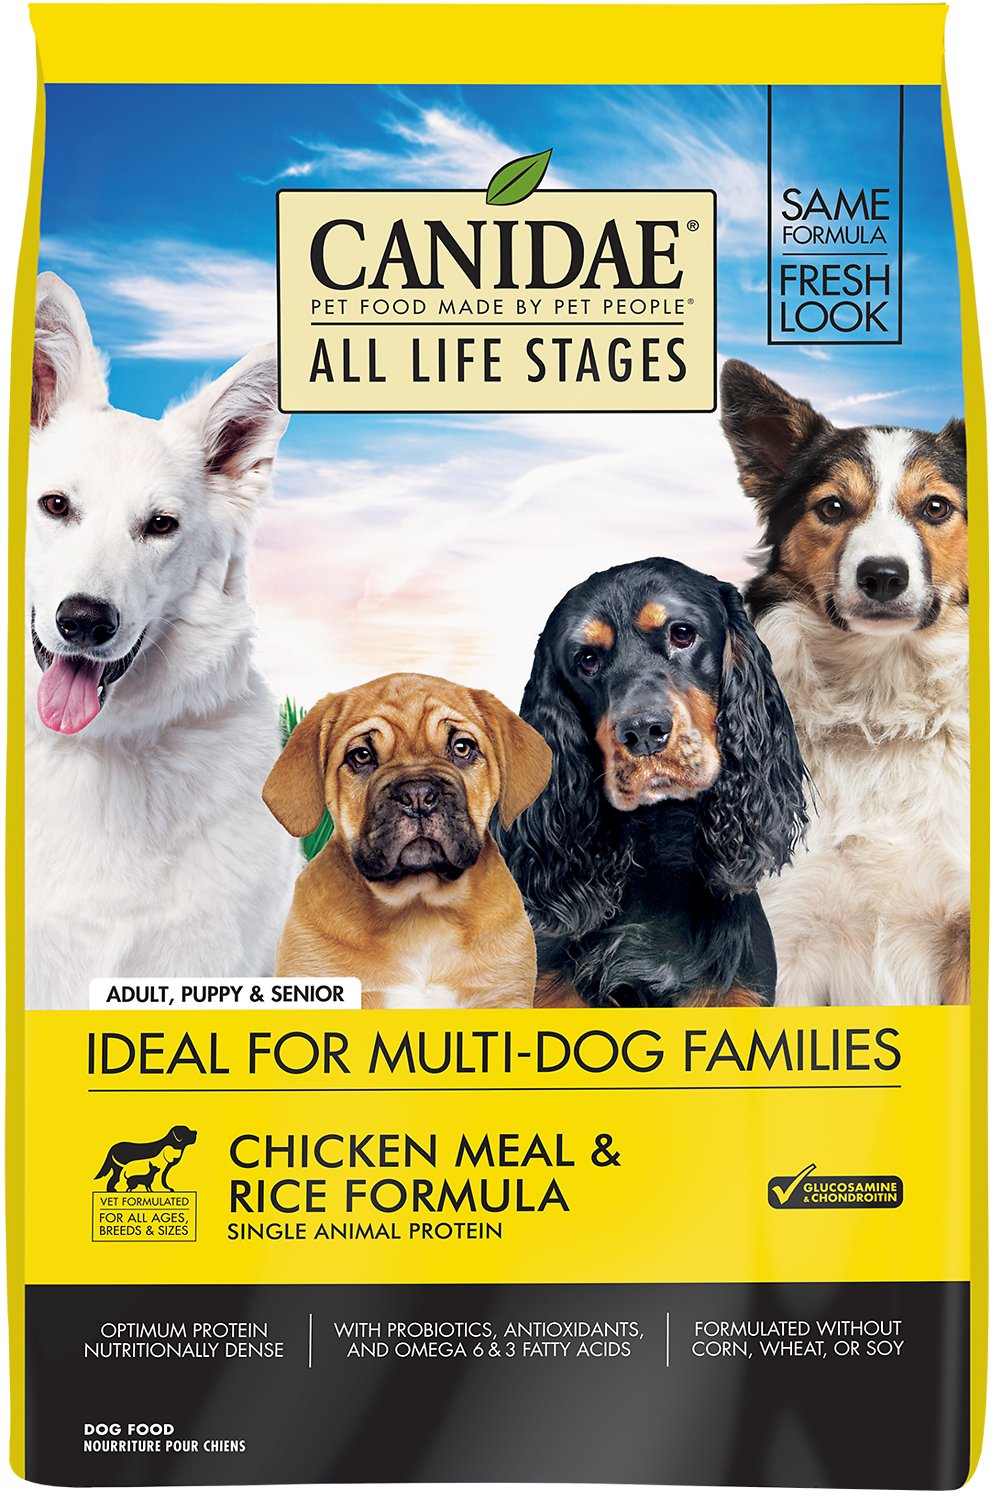 Canidae All Life Stages Chicken Meal & Rice Formula Dry Dog Food Image